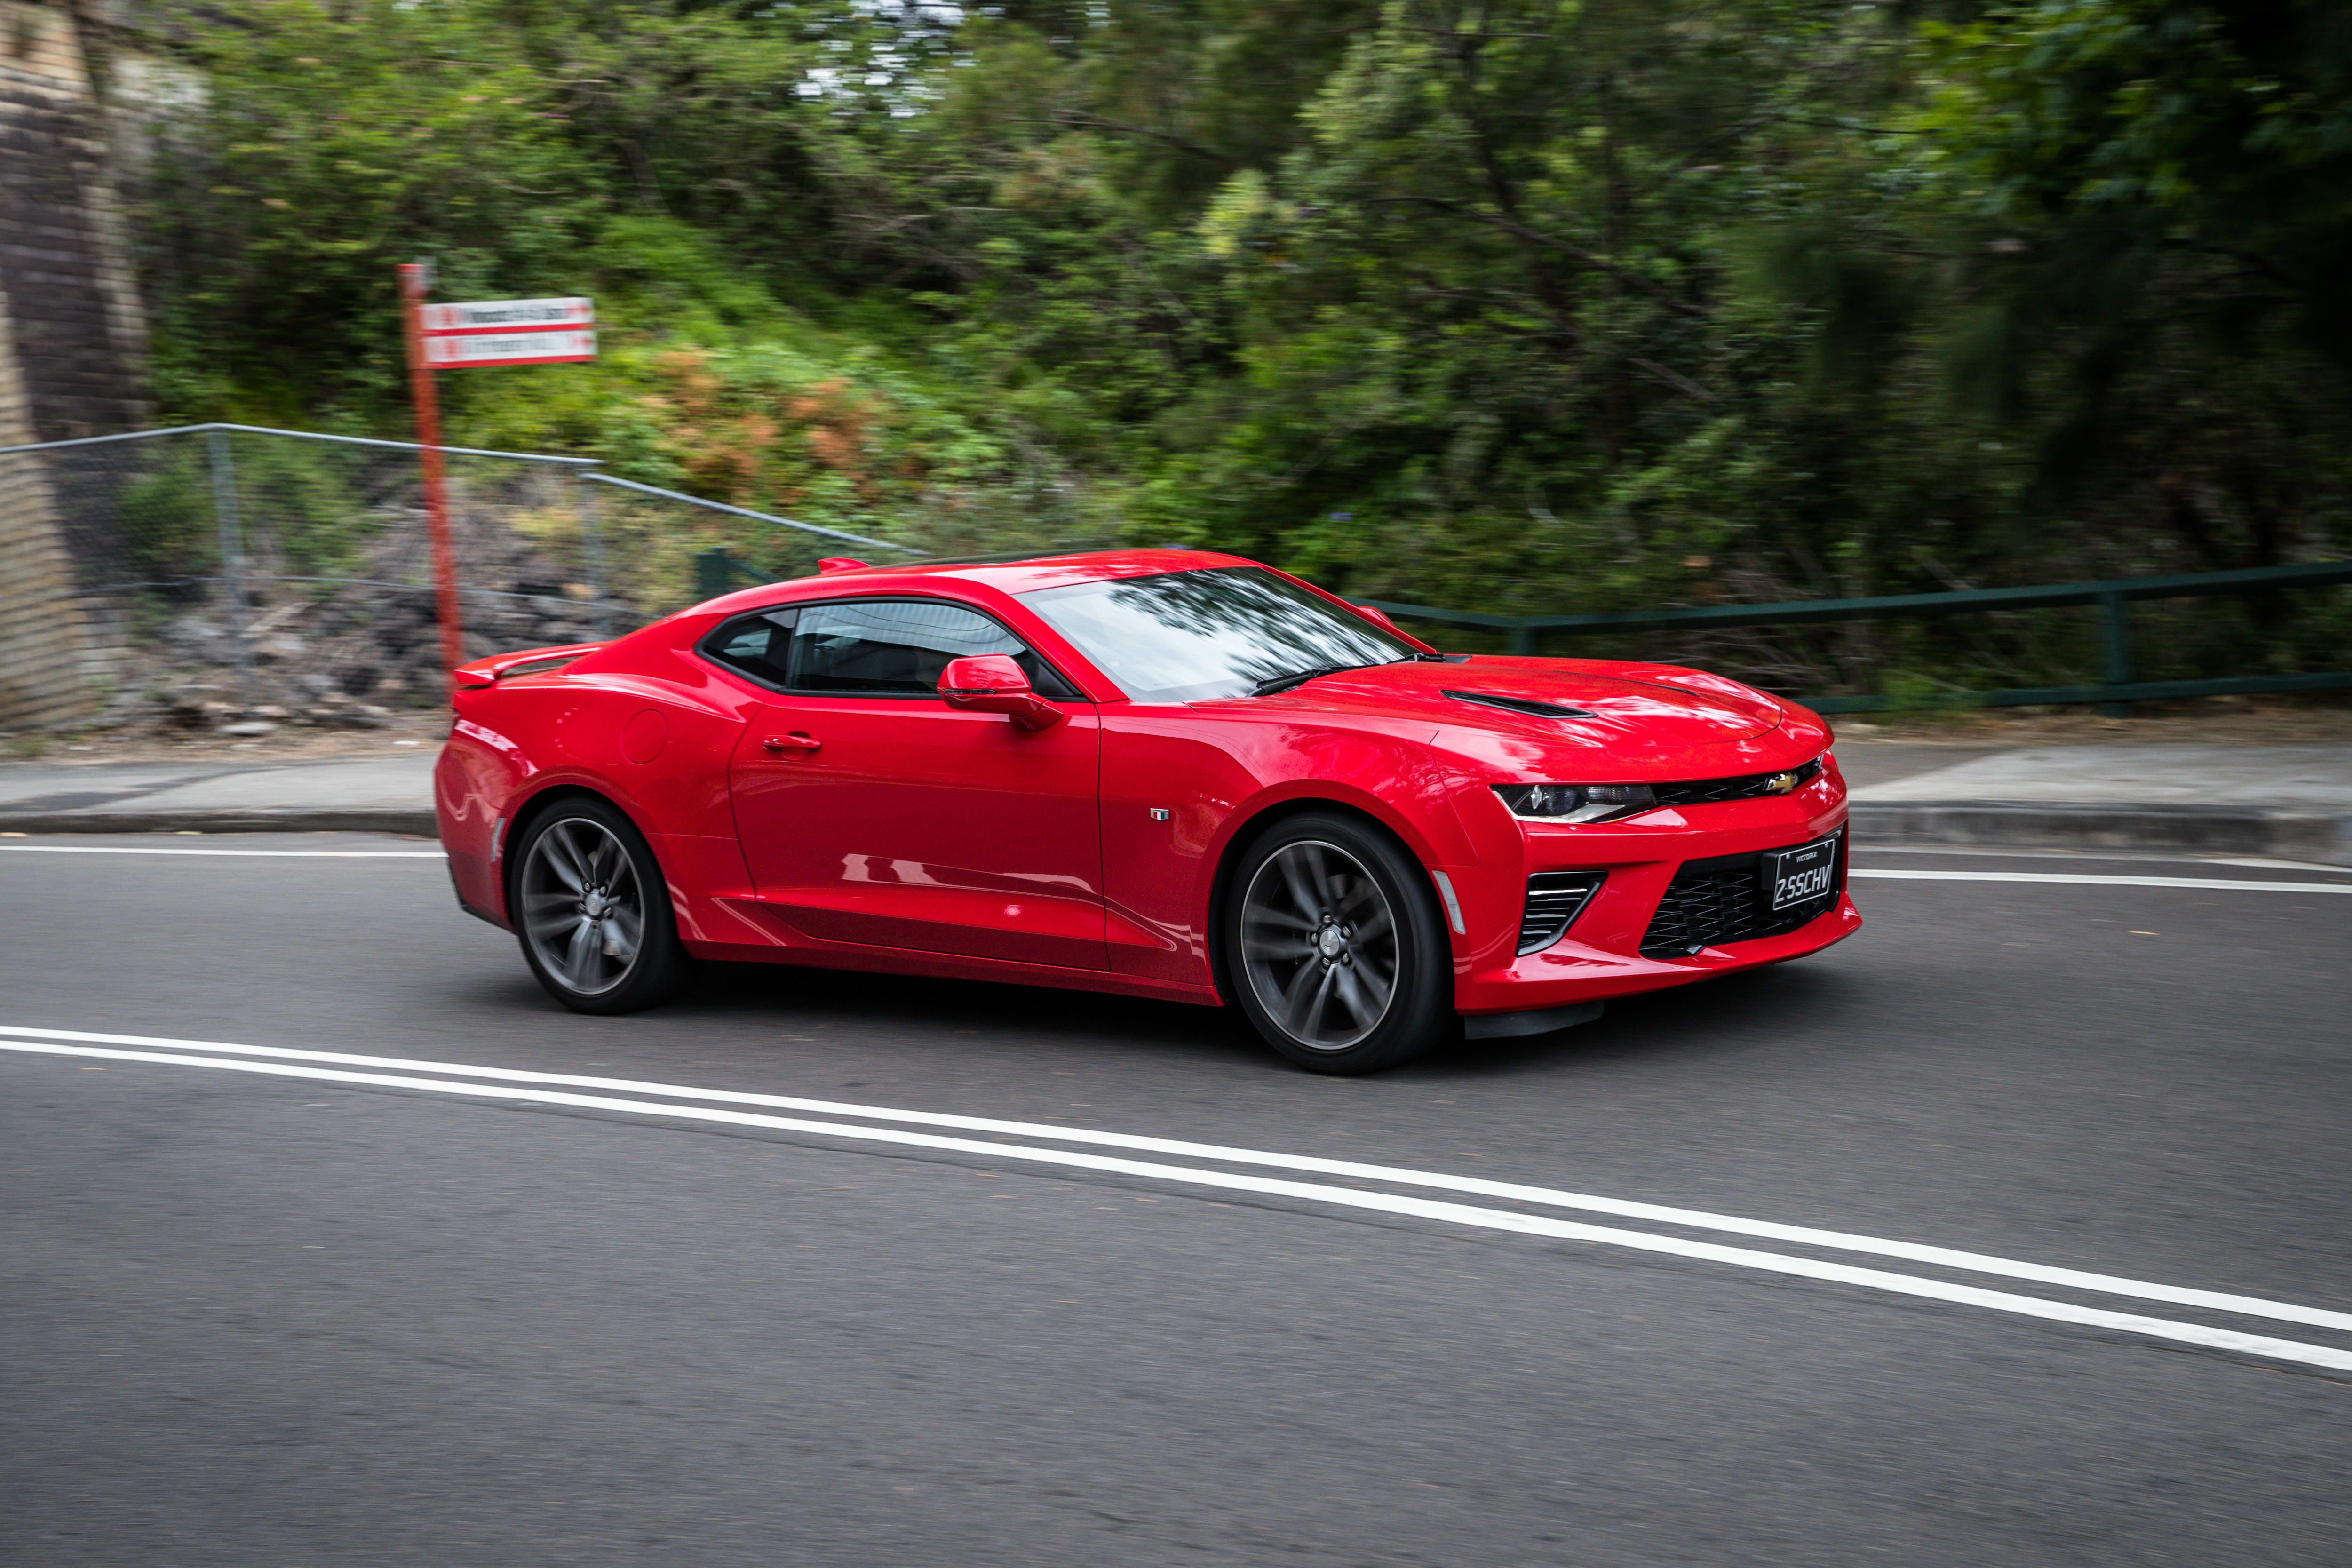 2019 Mustang GT 10AT coupe v Chevrolet Camaro 2SS 127